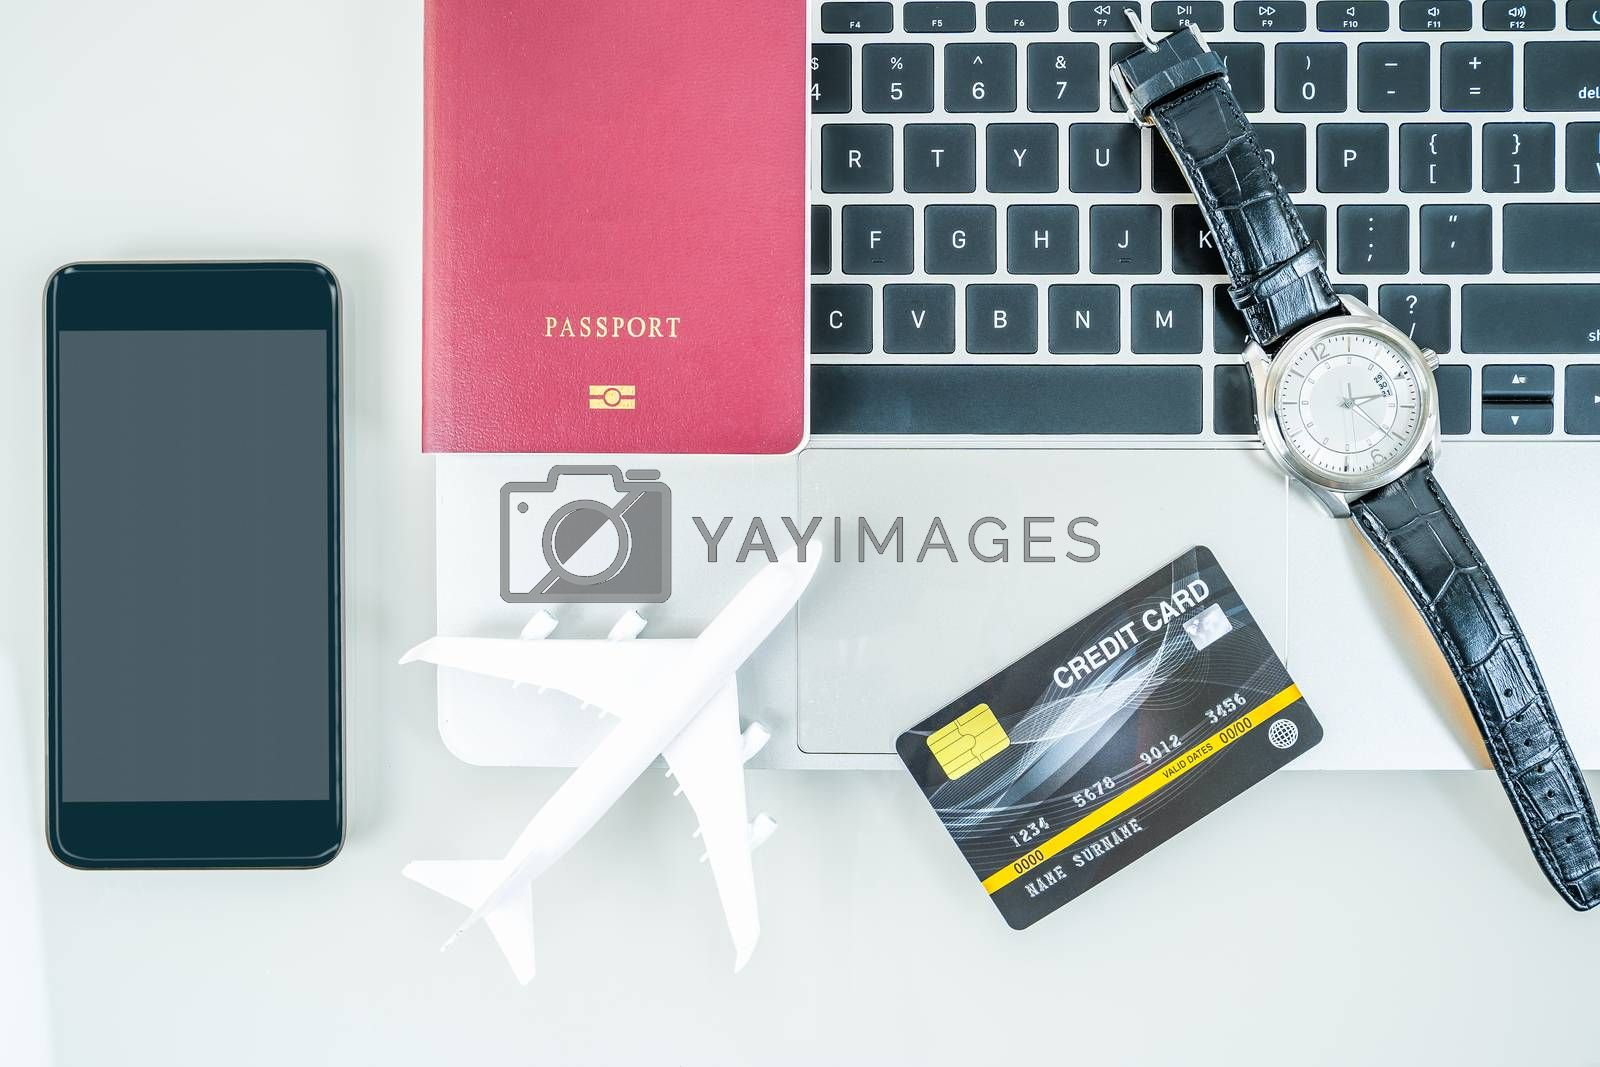 Smart phone, passport, credit card,wacth on keyboard, Traveling concept